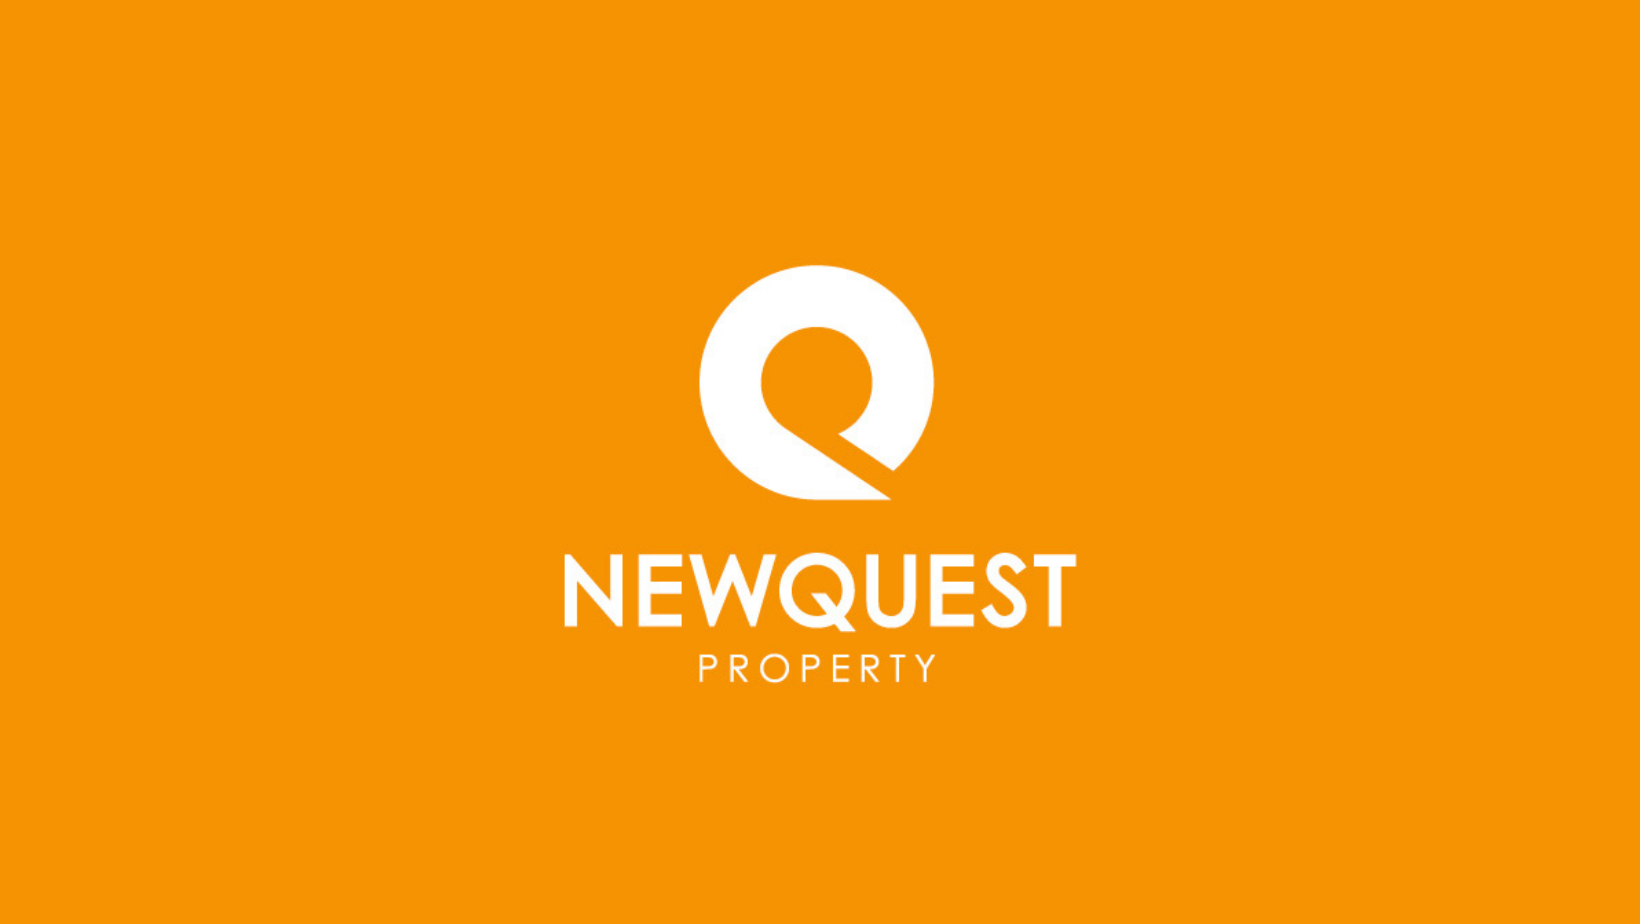 Newquest Property